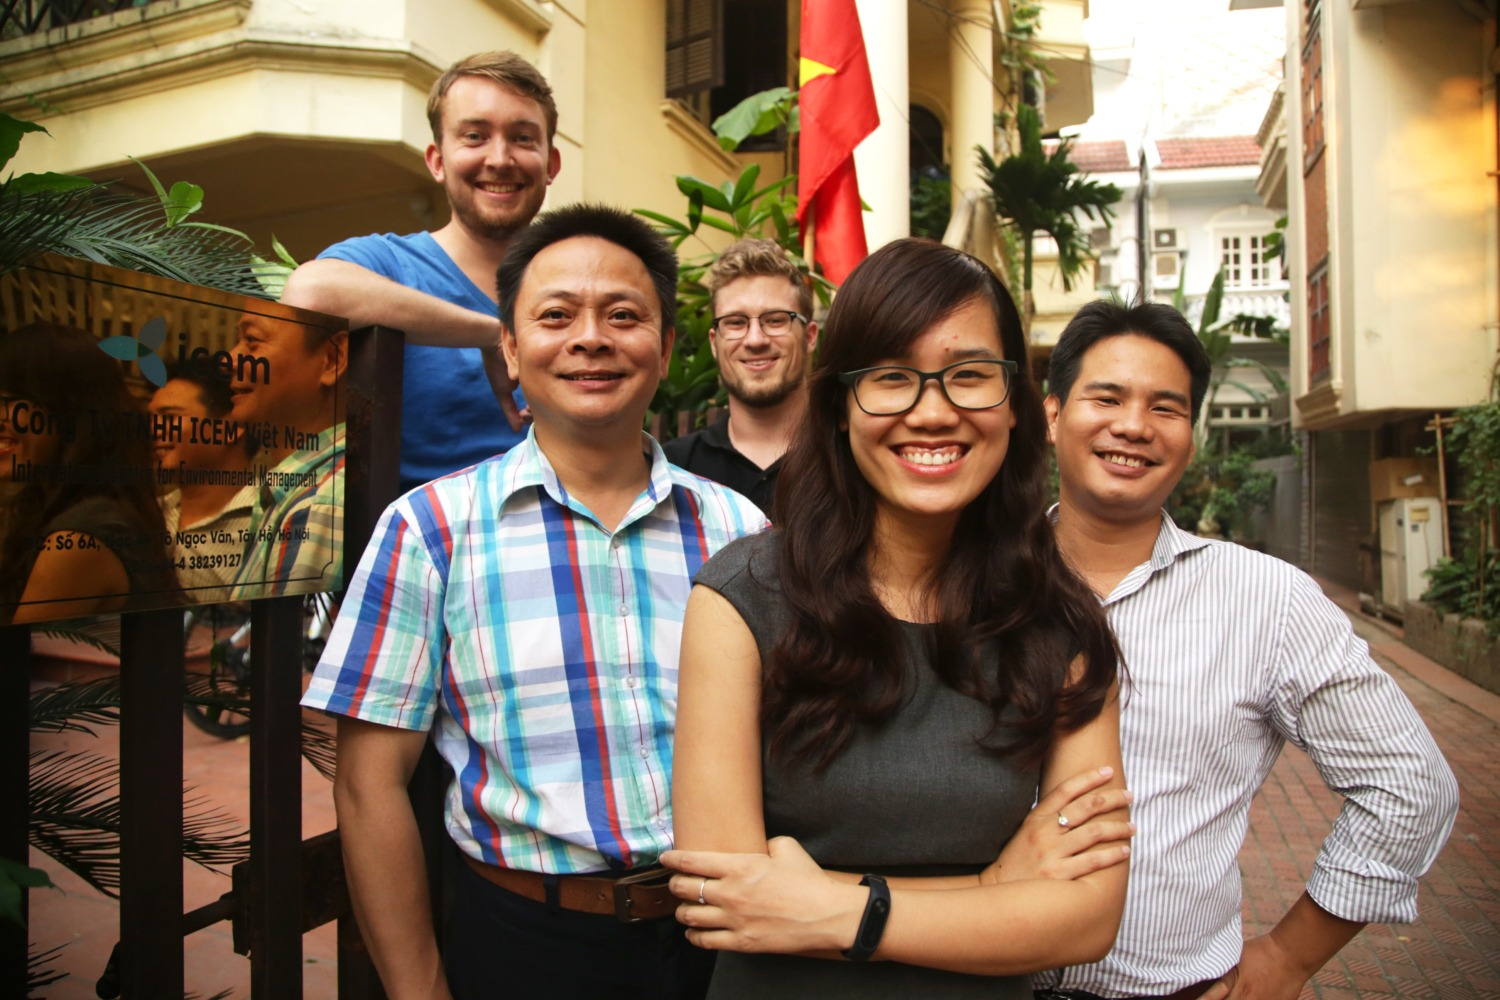 The ICEM GIS and modelling team (from left to right): Rens Hasman, Vinh Mai, Taylor Winchell Thuy Nguyen and Minh Pham